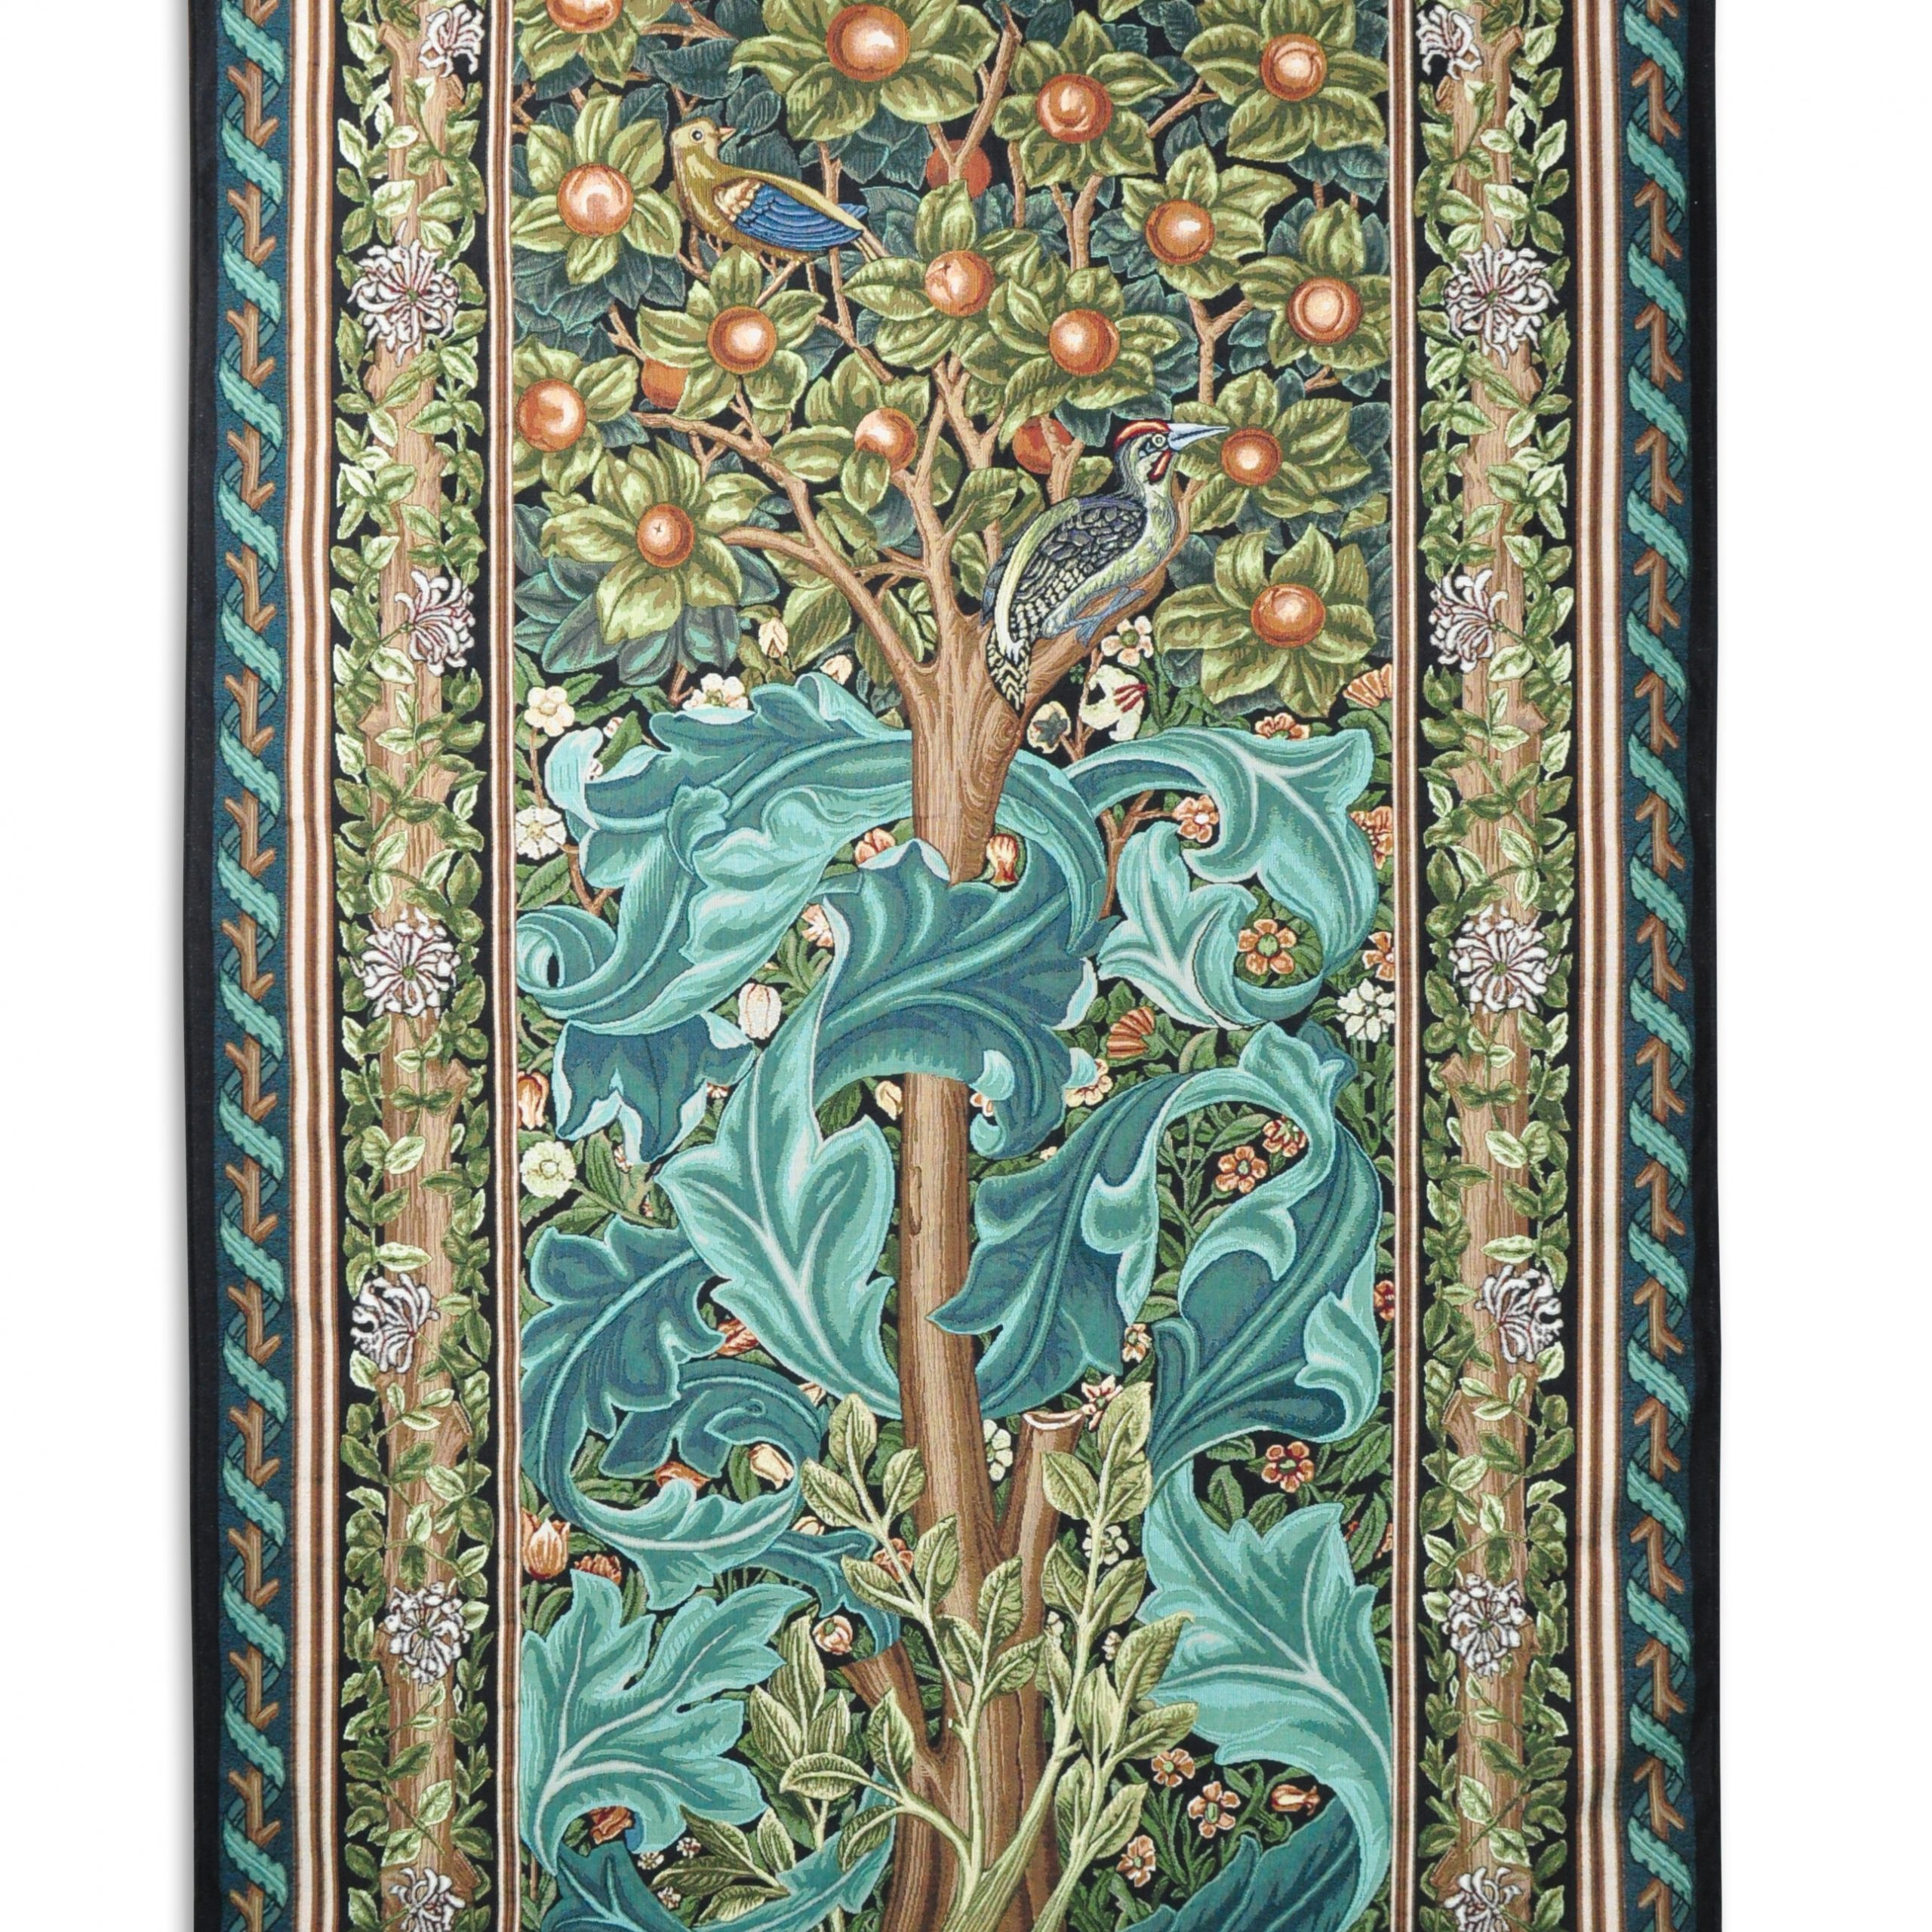 Woodpecker Iiwilliam Morris Tapestry Throughout 2017 Blended Fabric Woodpecker European Tapestries (View 2 of 20)